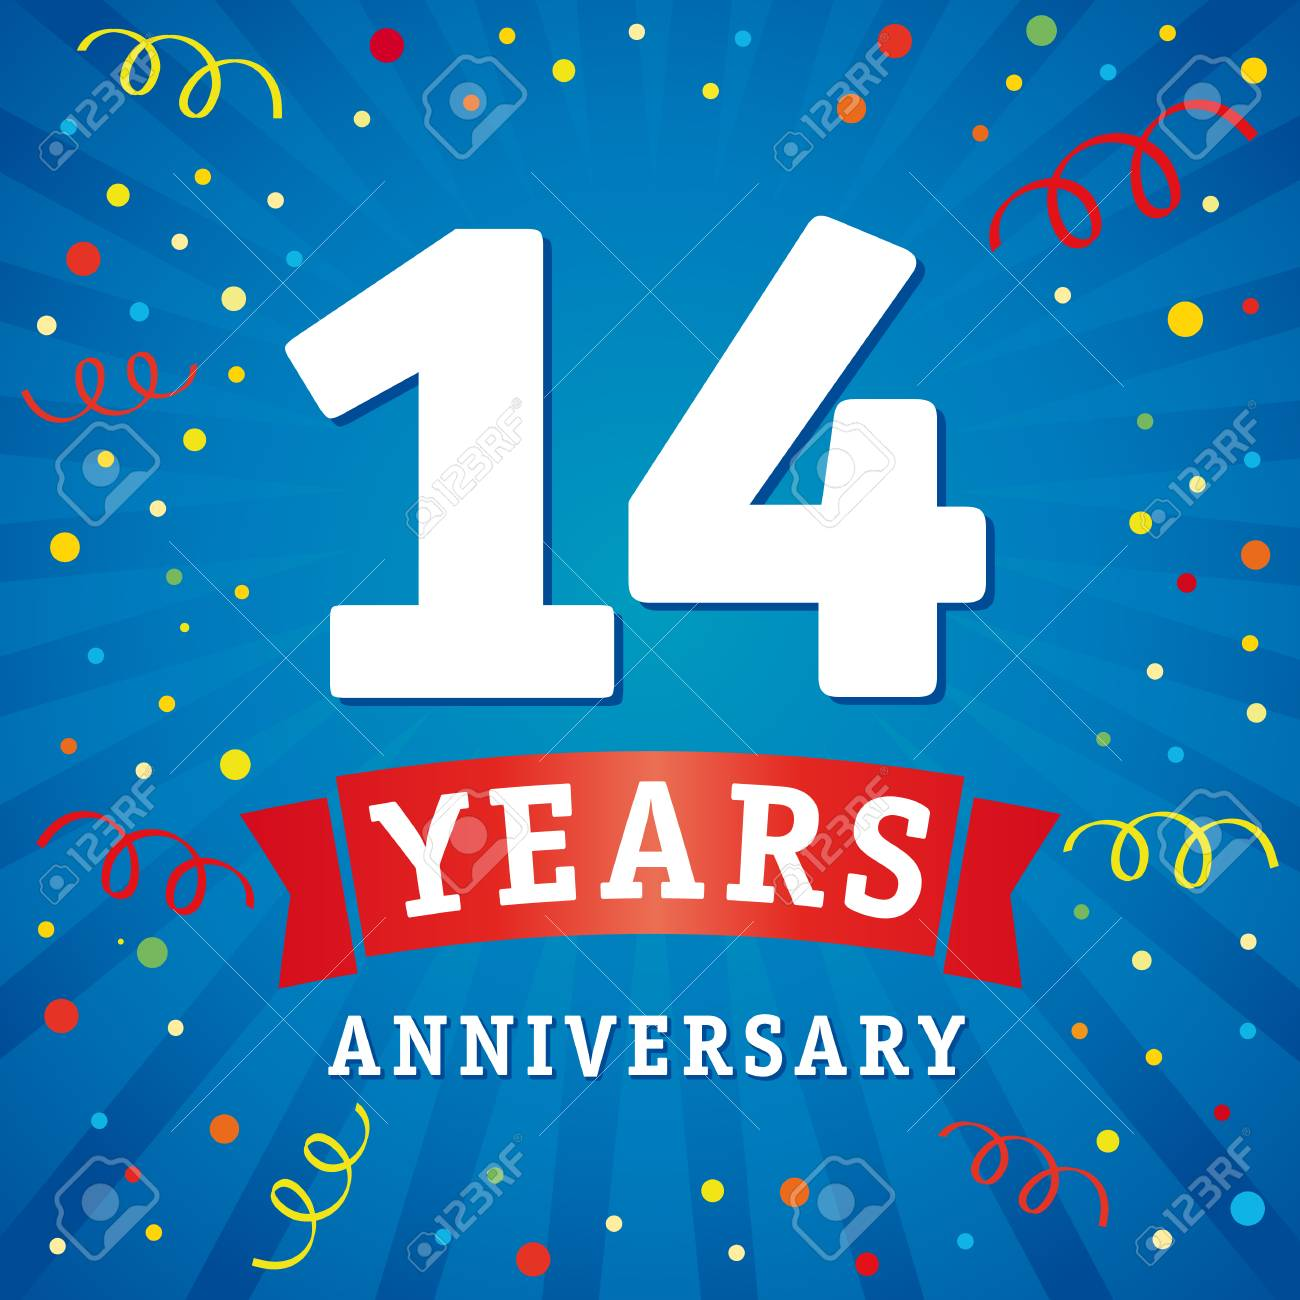 14 Years Anniversary Logo Celebration Card 14th Years Anniversary Royalty Free Cliparts Vectors And Stock Illustration Image 83312862